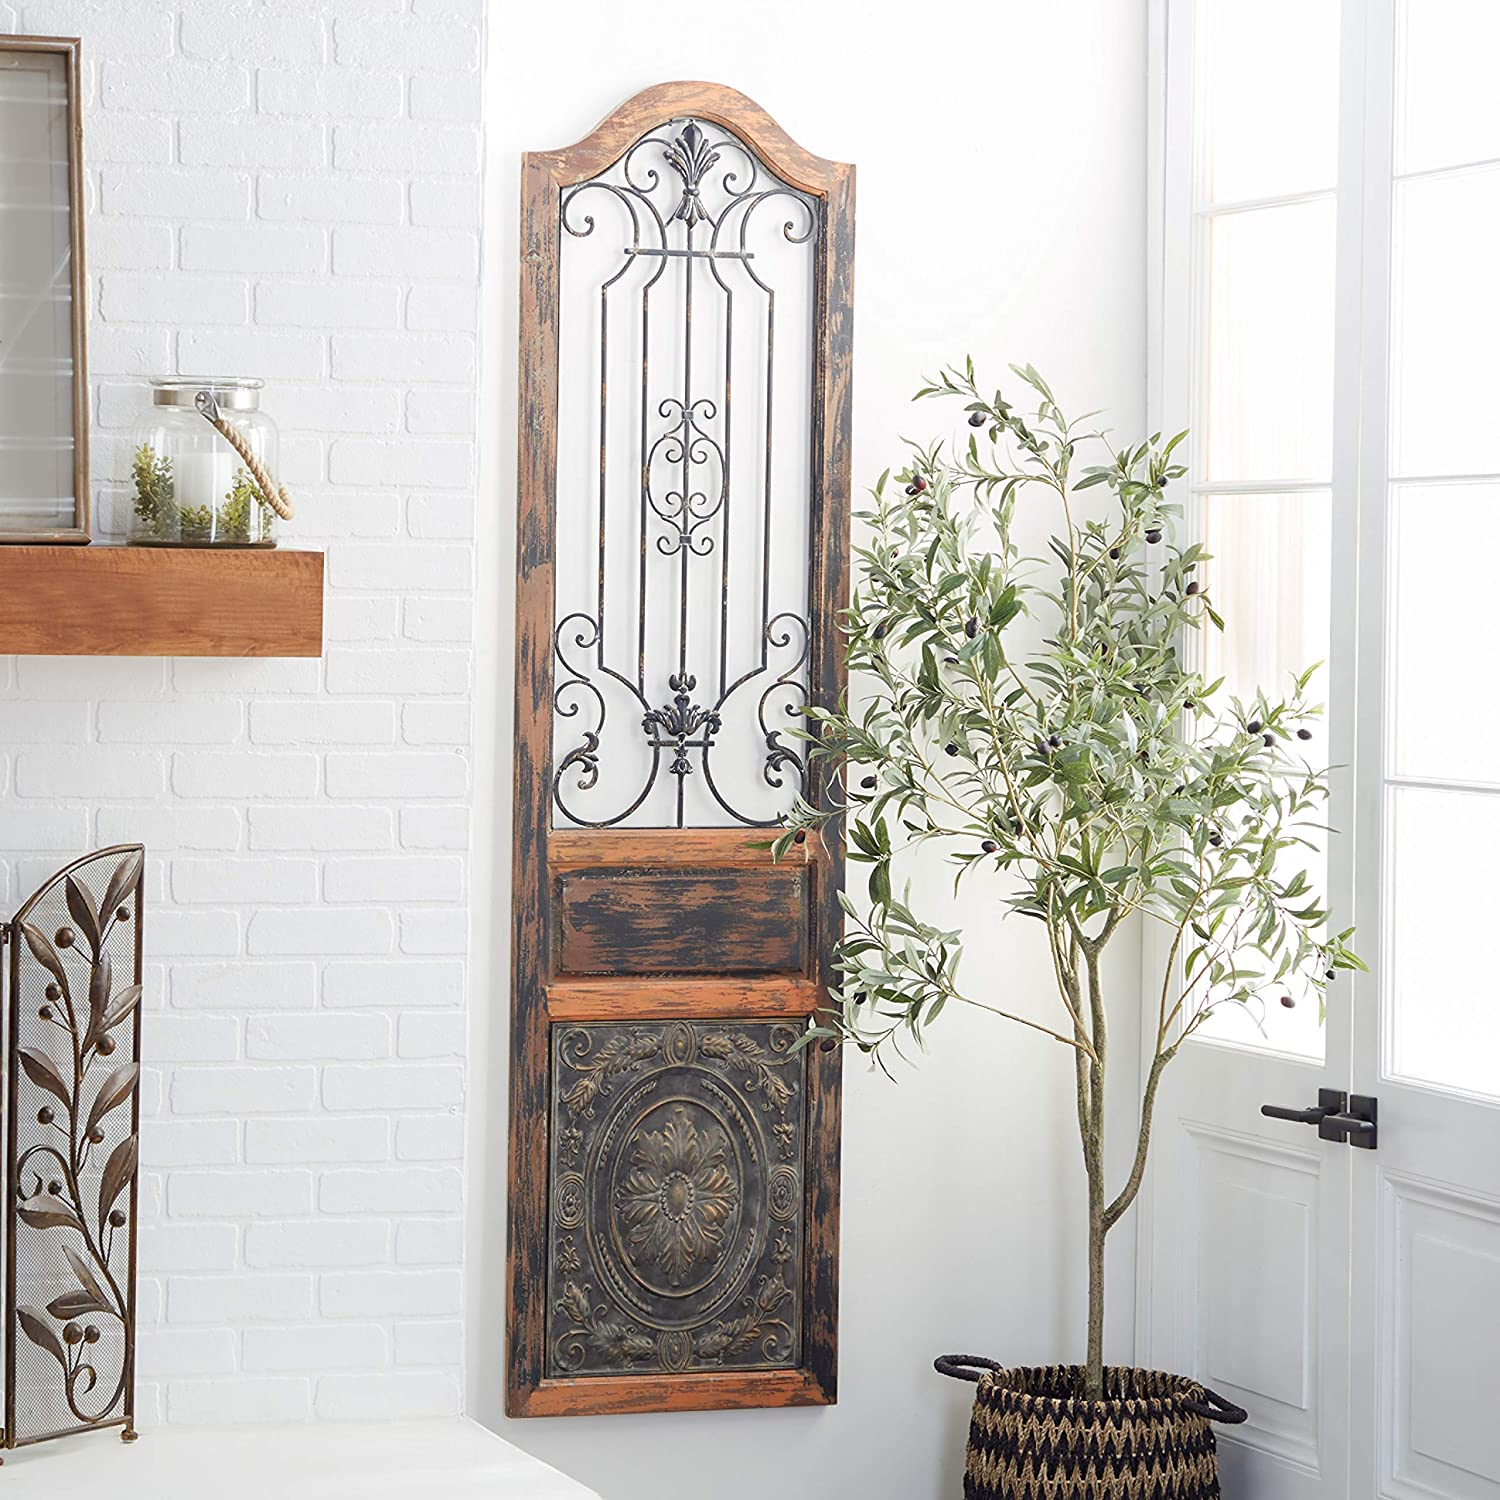 Amazon Com Deco 79 Rustic Arched Door Inspired Wood And Metal Wall Decor 72 H X 19 L Distressed Chestnut Brown Finish Home Kitchen